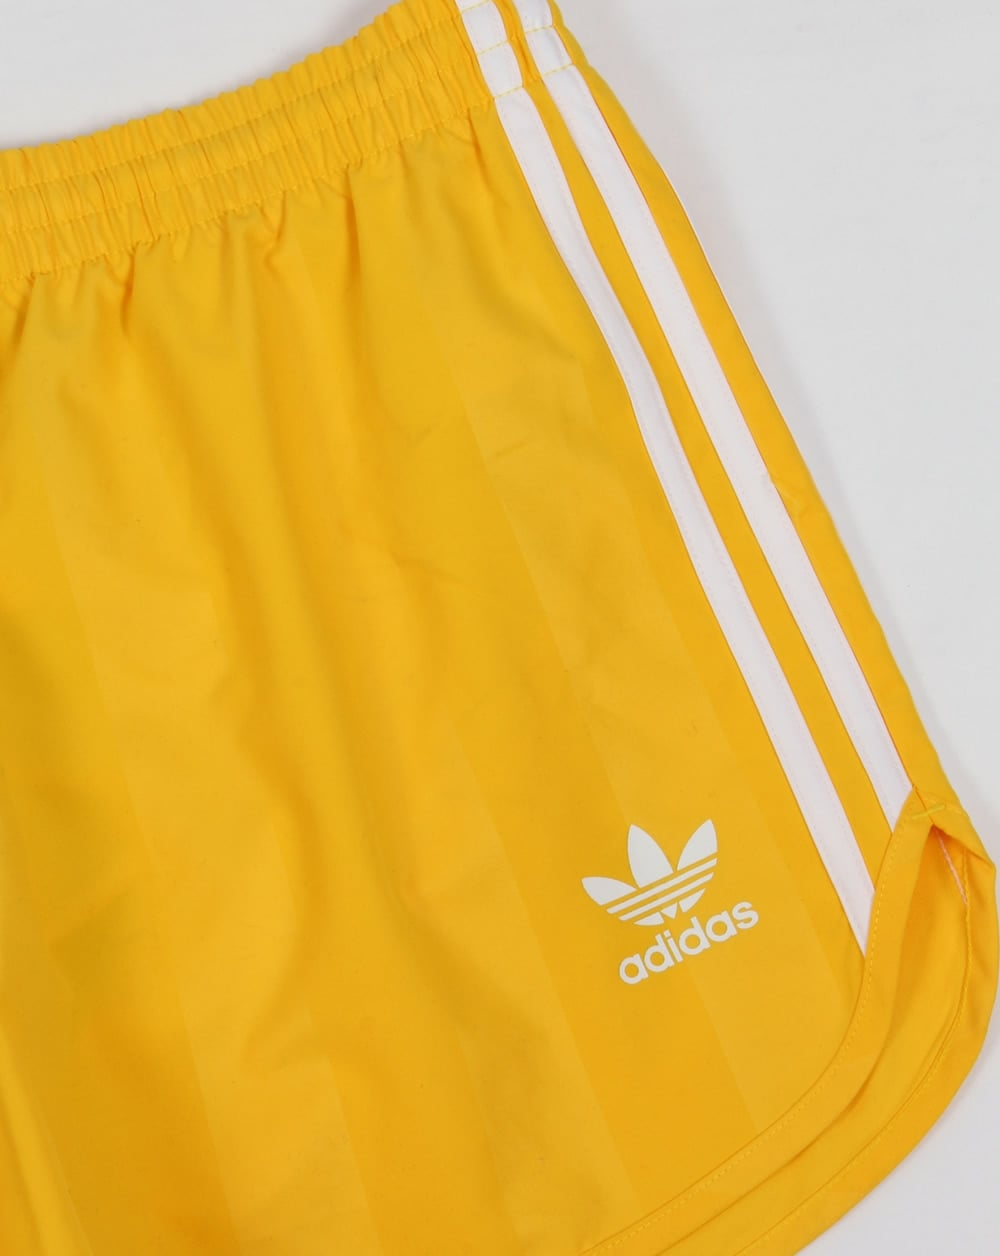 Adidas Yellow Shorts Adidas Com Outlet